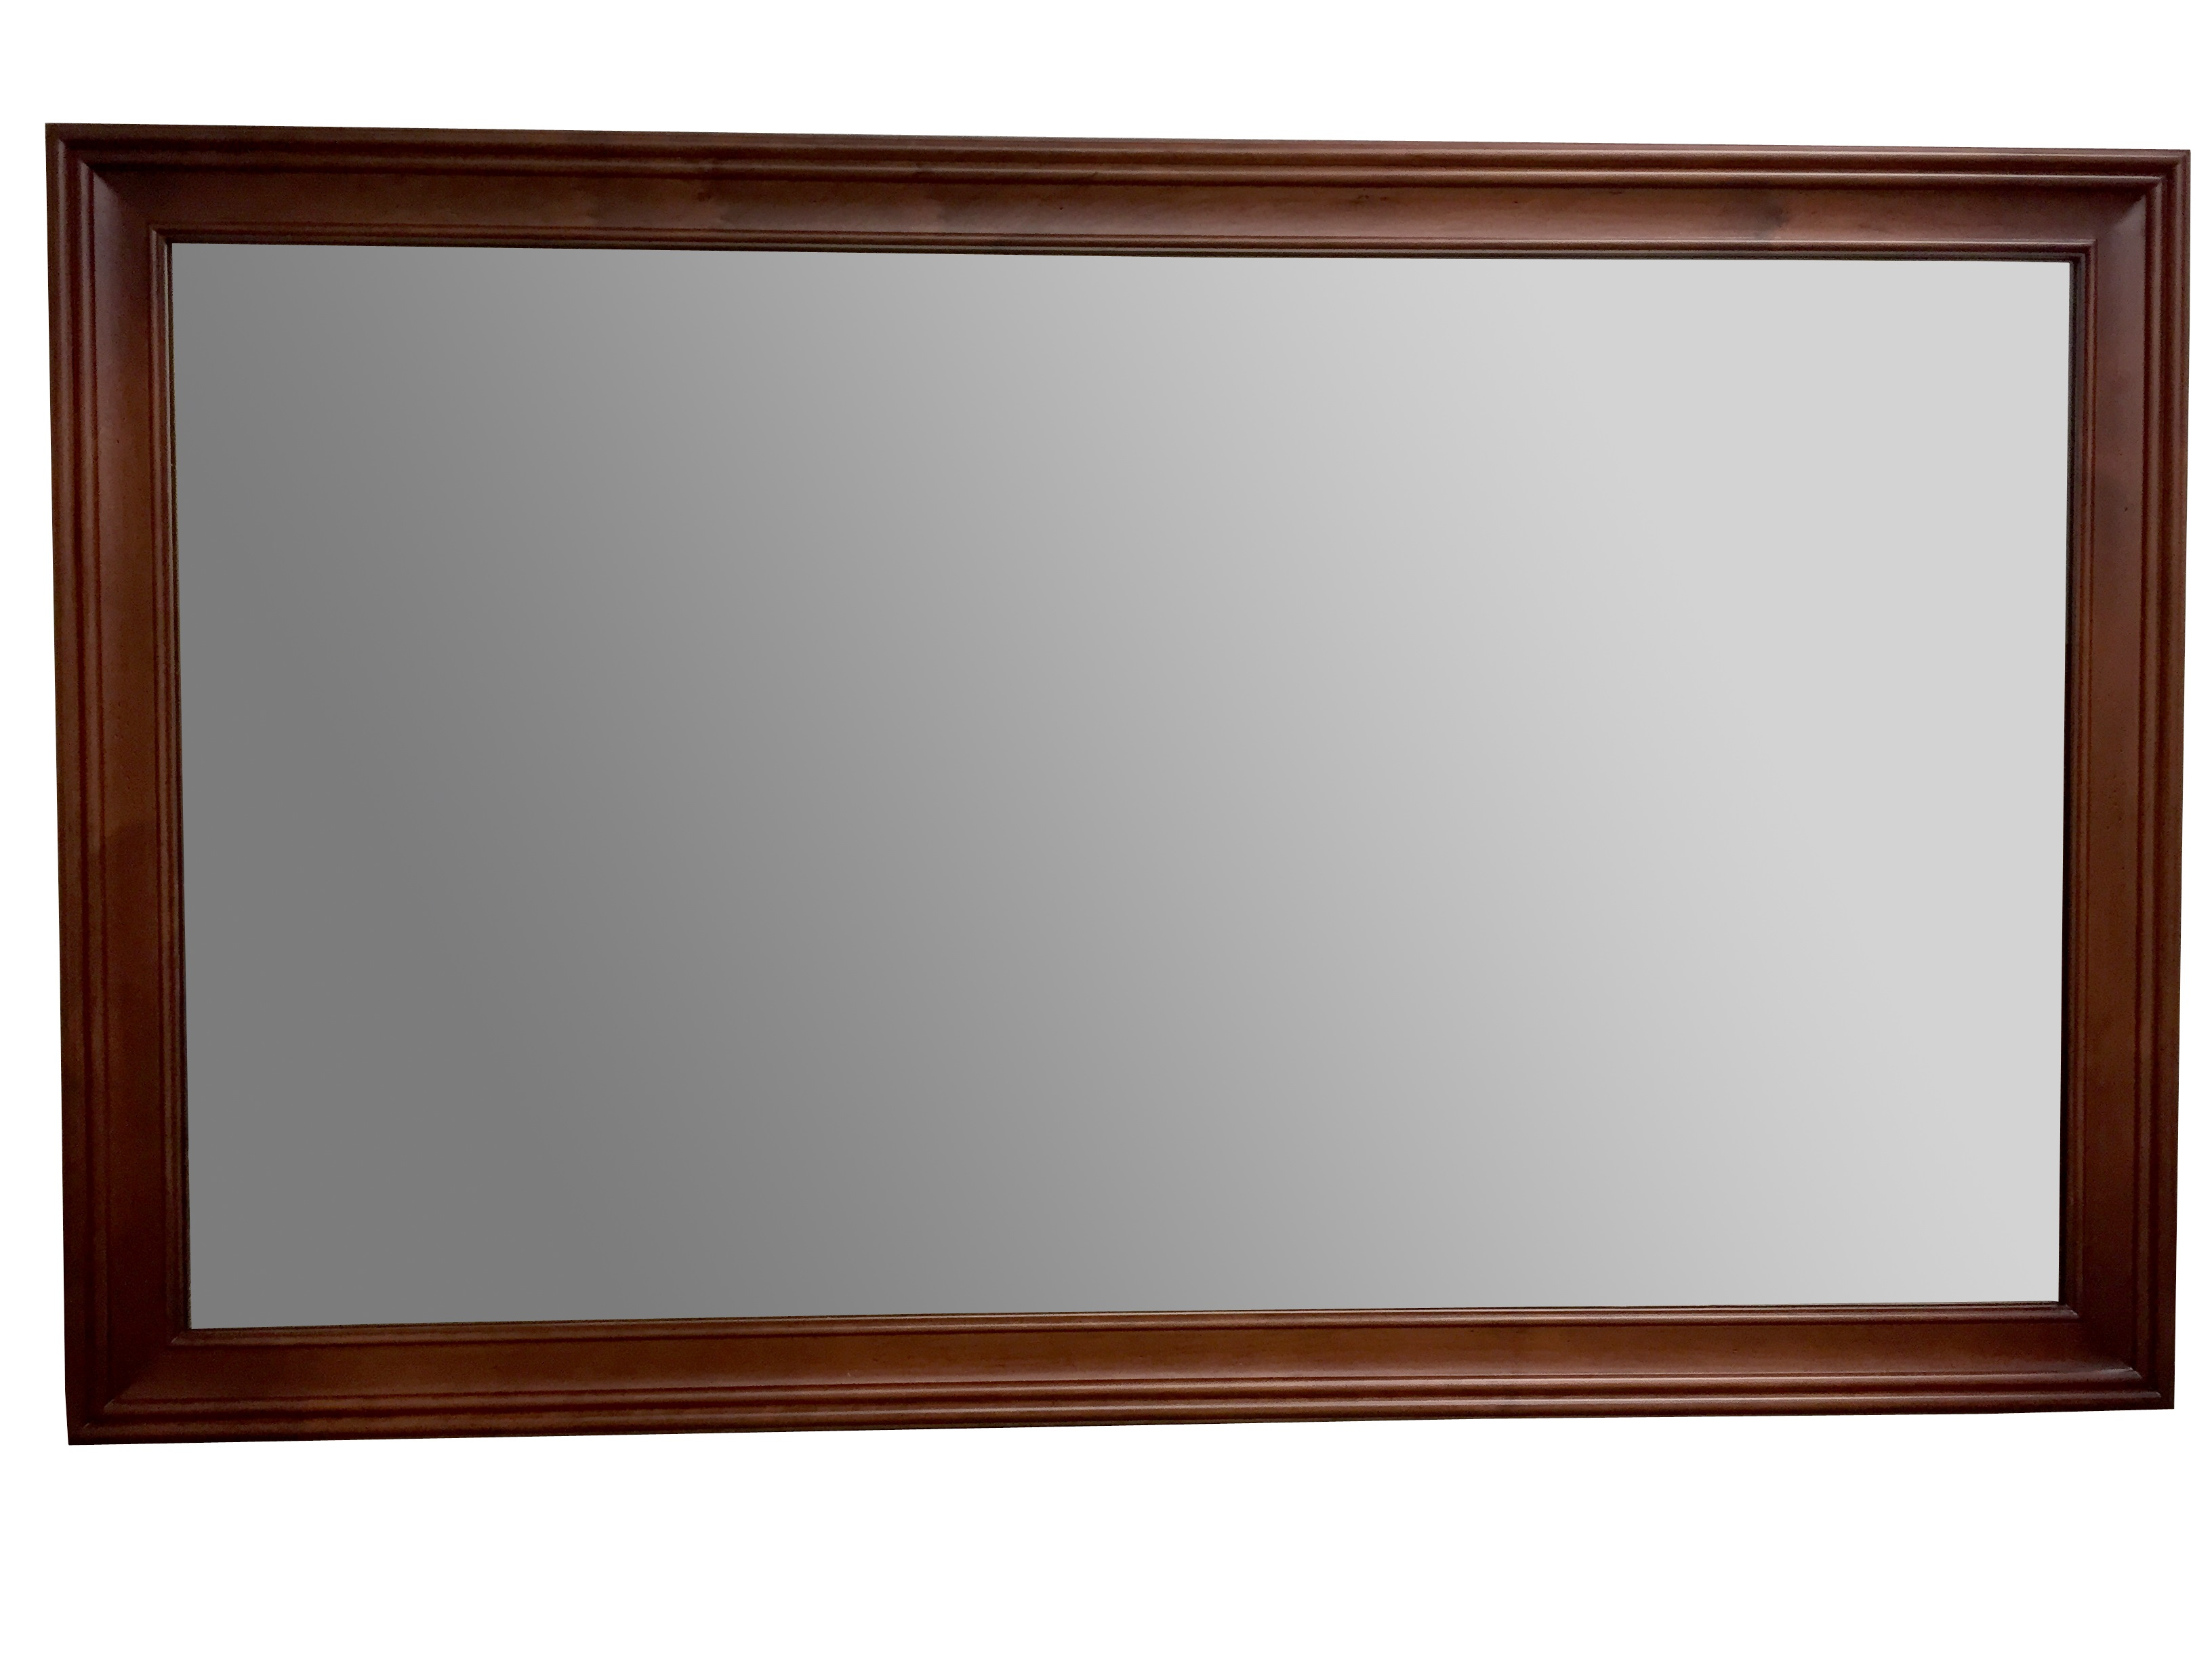 "Ronbow Transitional 60"" x 39"" Solid Wood Framed Bathroom Mirror in Colonial Cherry"